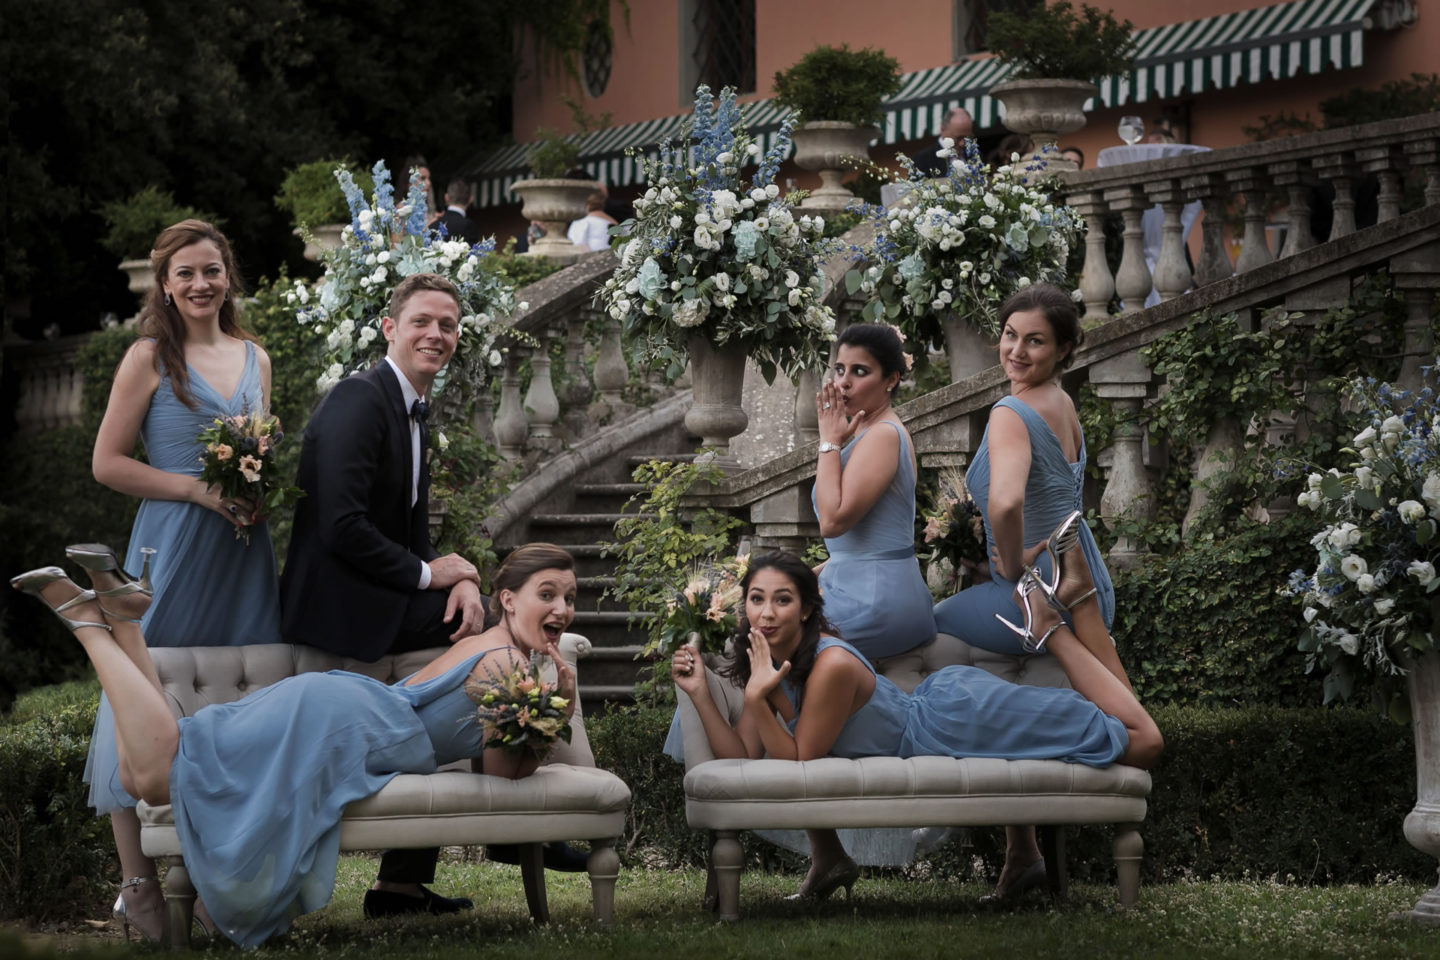 Bridesmaids :: Amazing wedding day at Il Borro :: Luxury wedding photography - 38 :: Bridesmaids